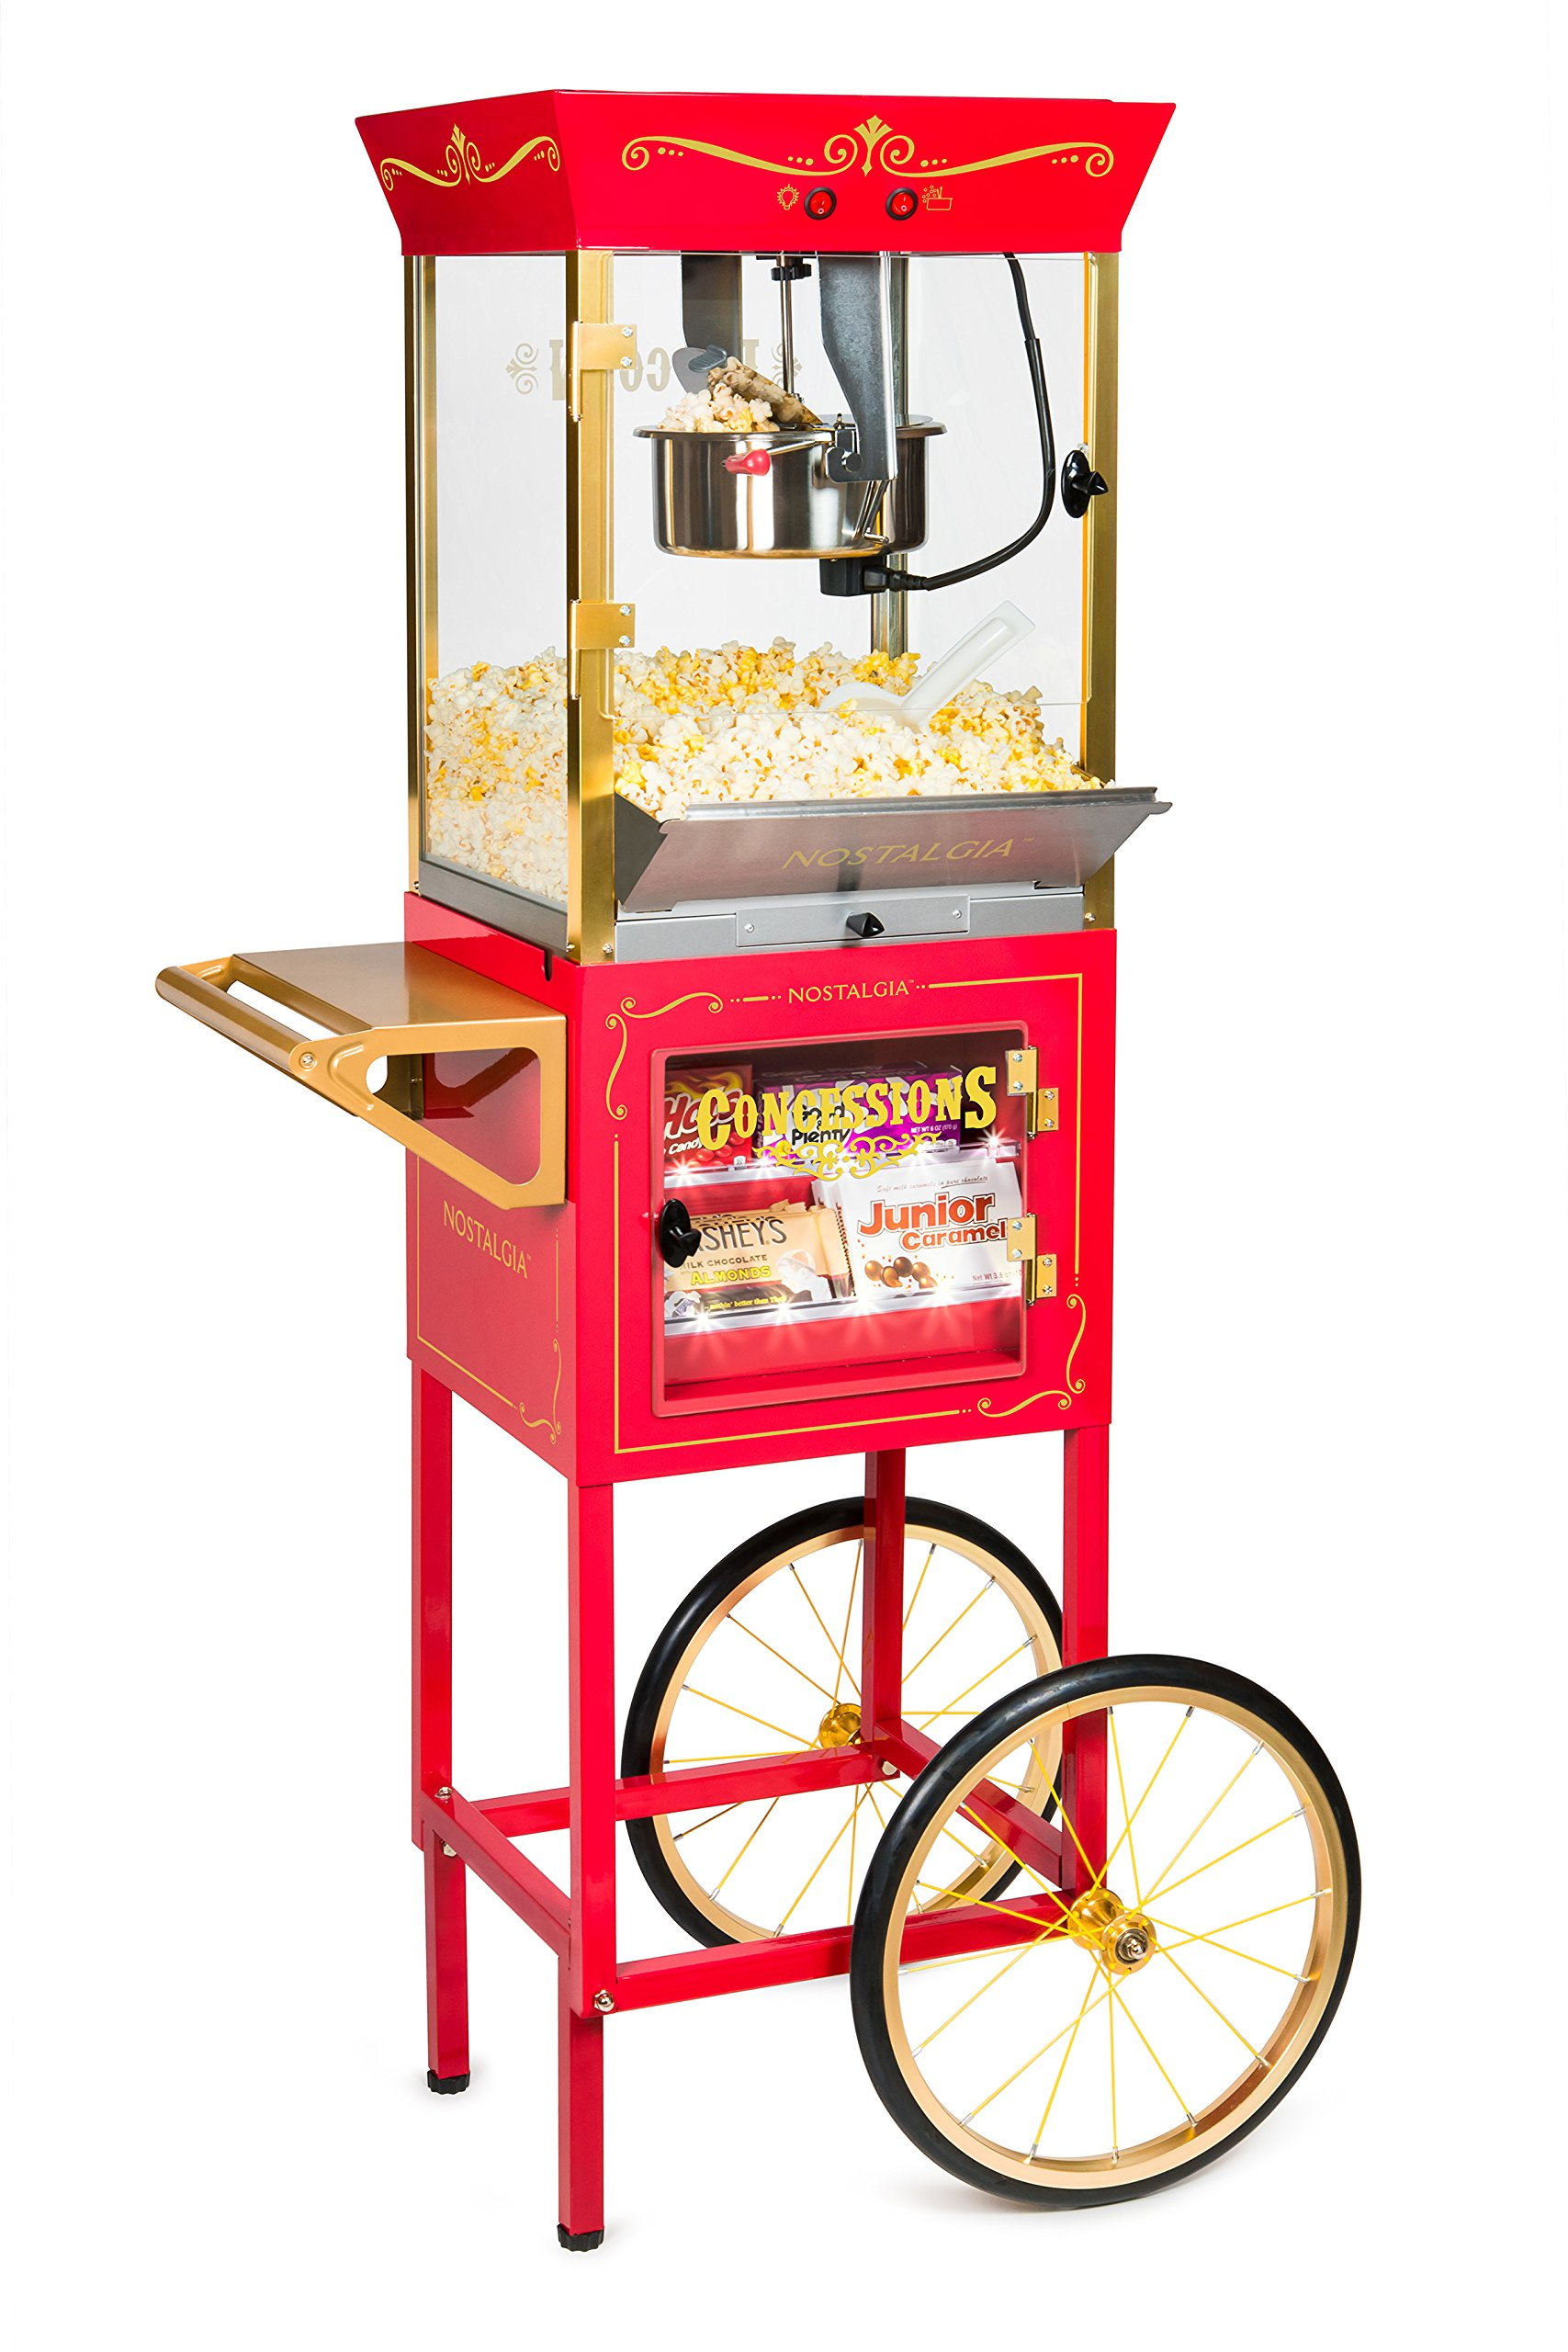 Nostalgia CCP610 Vintage 8-Ounce Commercial Popcorn & Concession Cart - 59 Inches Tall by Nostalgia